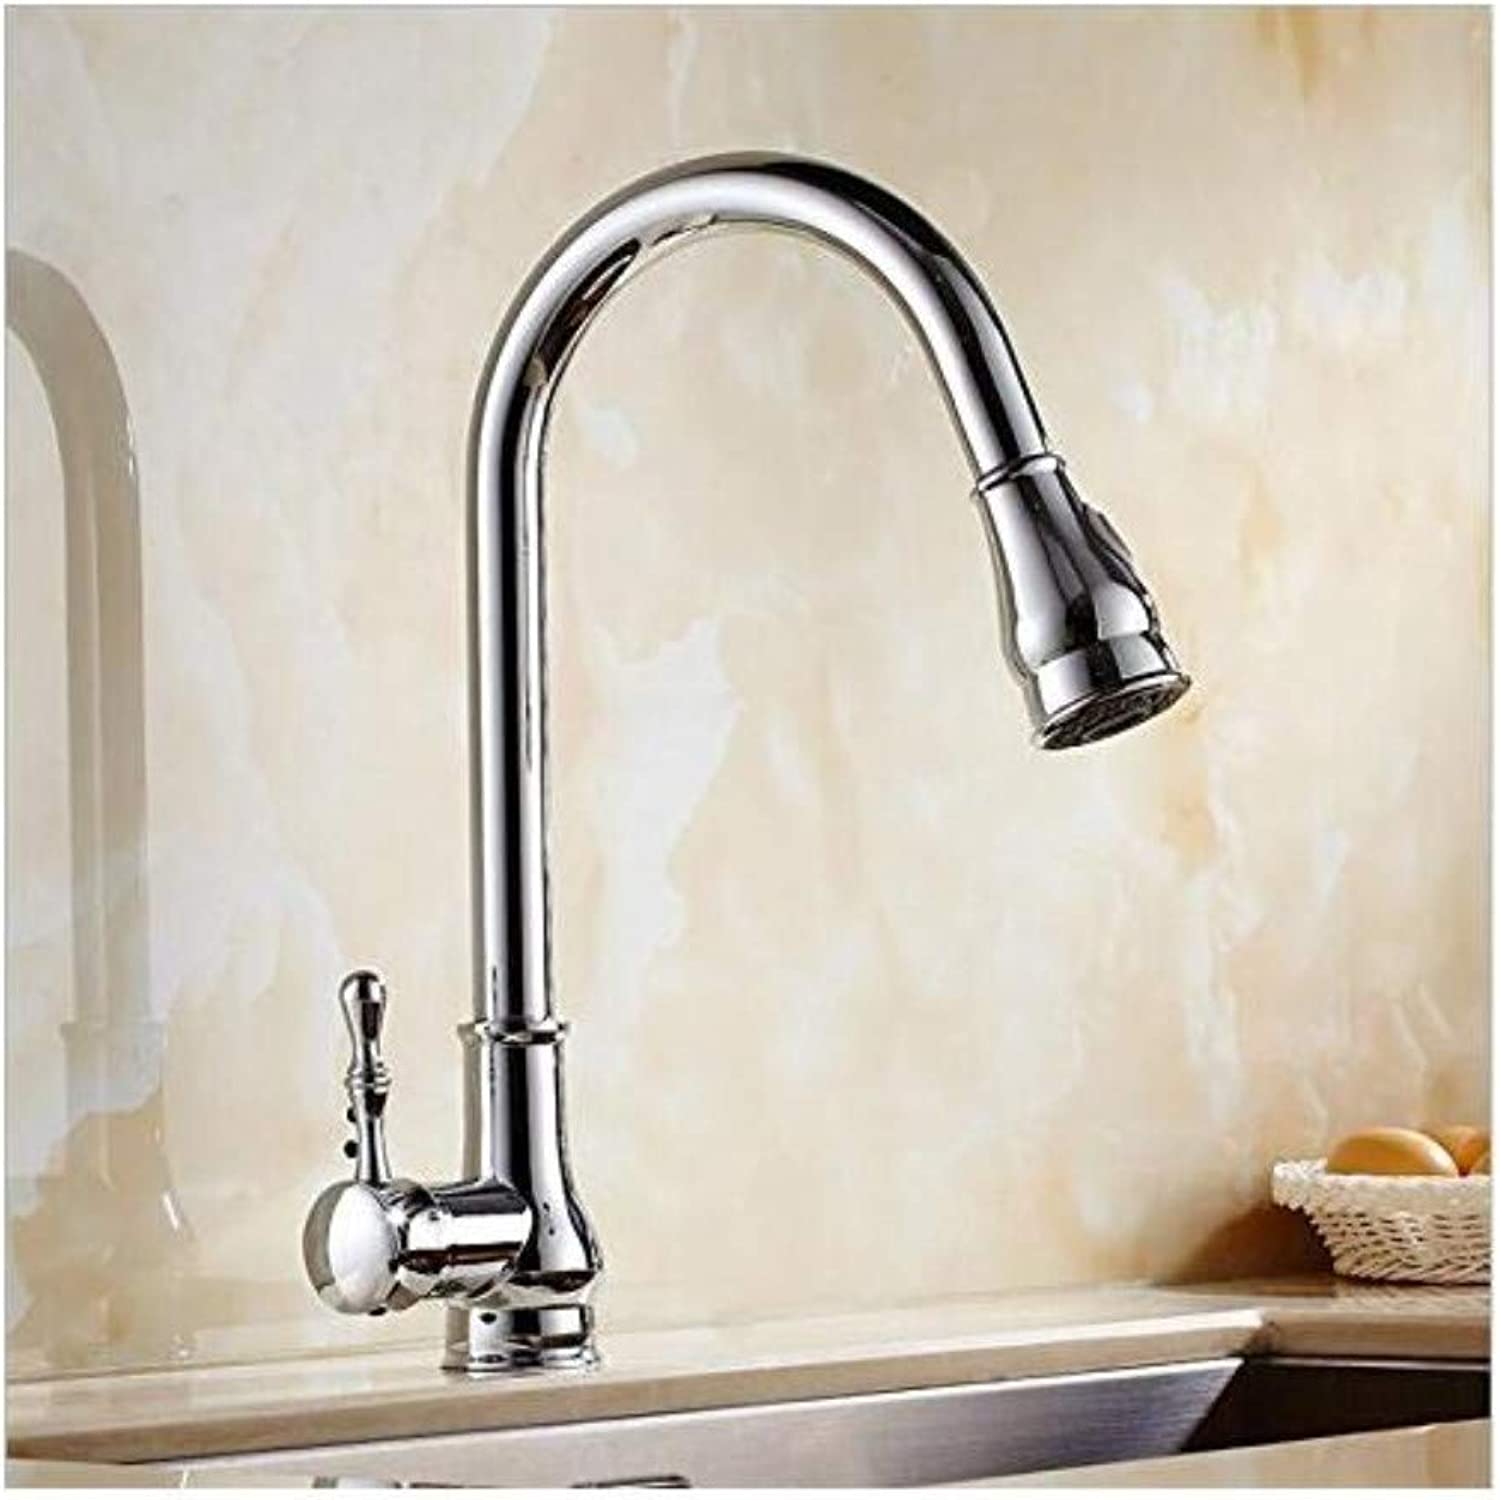 Luxury Plated Vintage Faucet Mixer Chrome Single Lever Brass Hot and Cold Pull Out Kitchen Sink Basin Mixer Tap Faucet